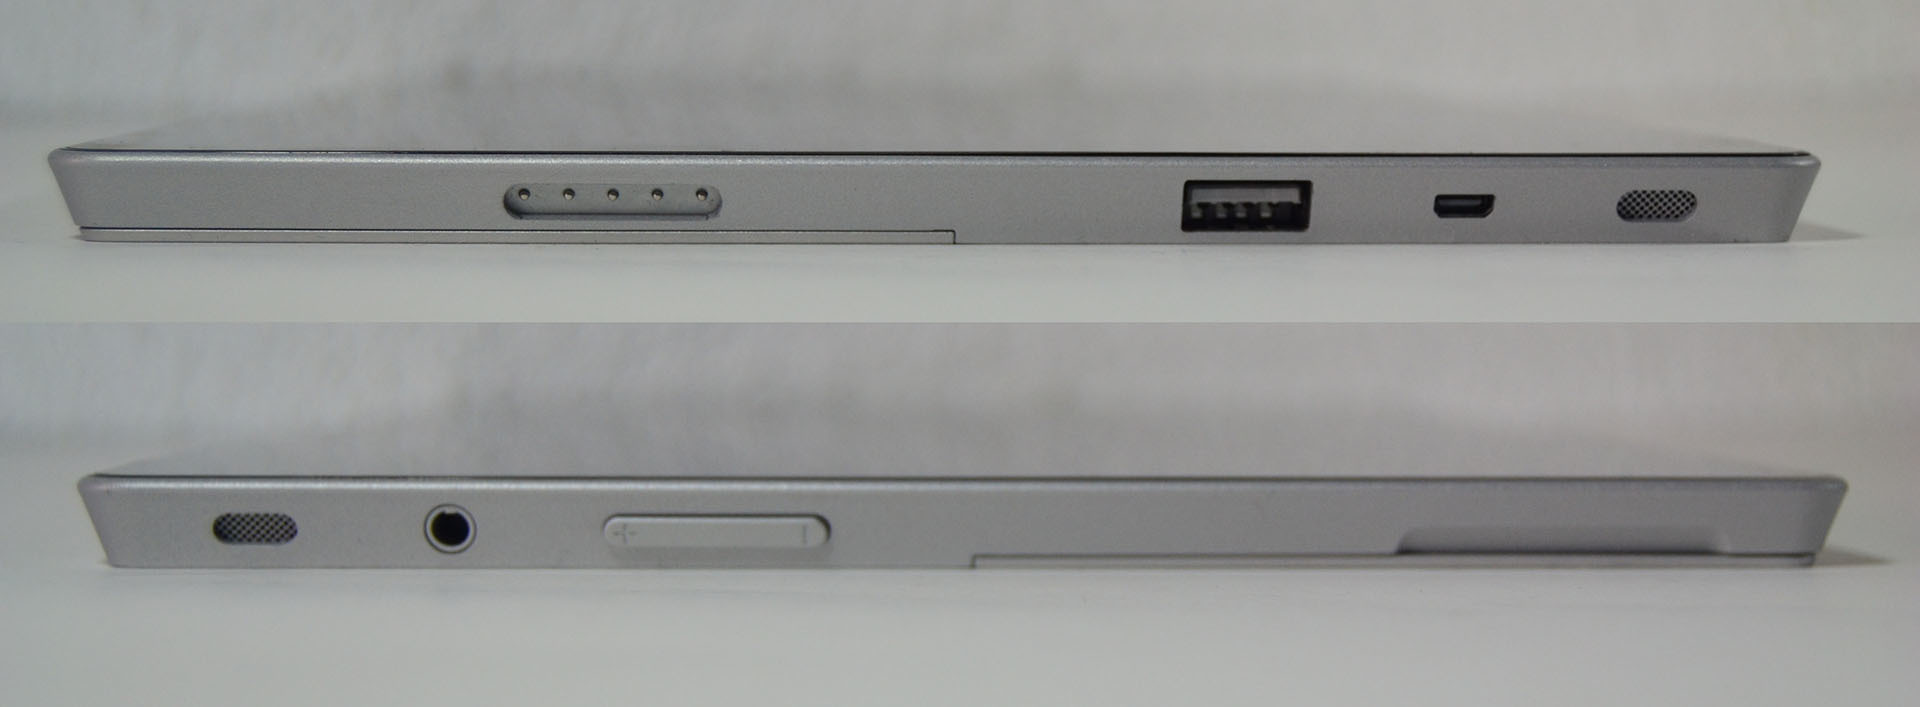 Foto de Microsoft Surface 2 (2/40)